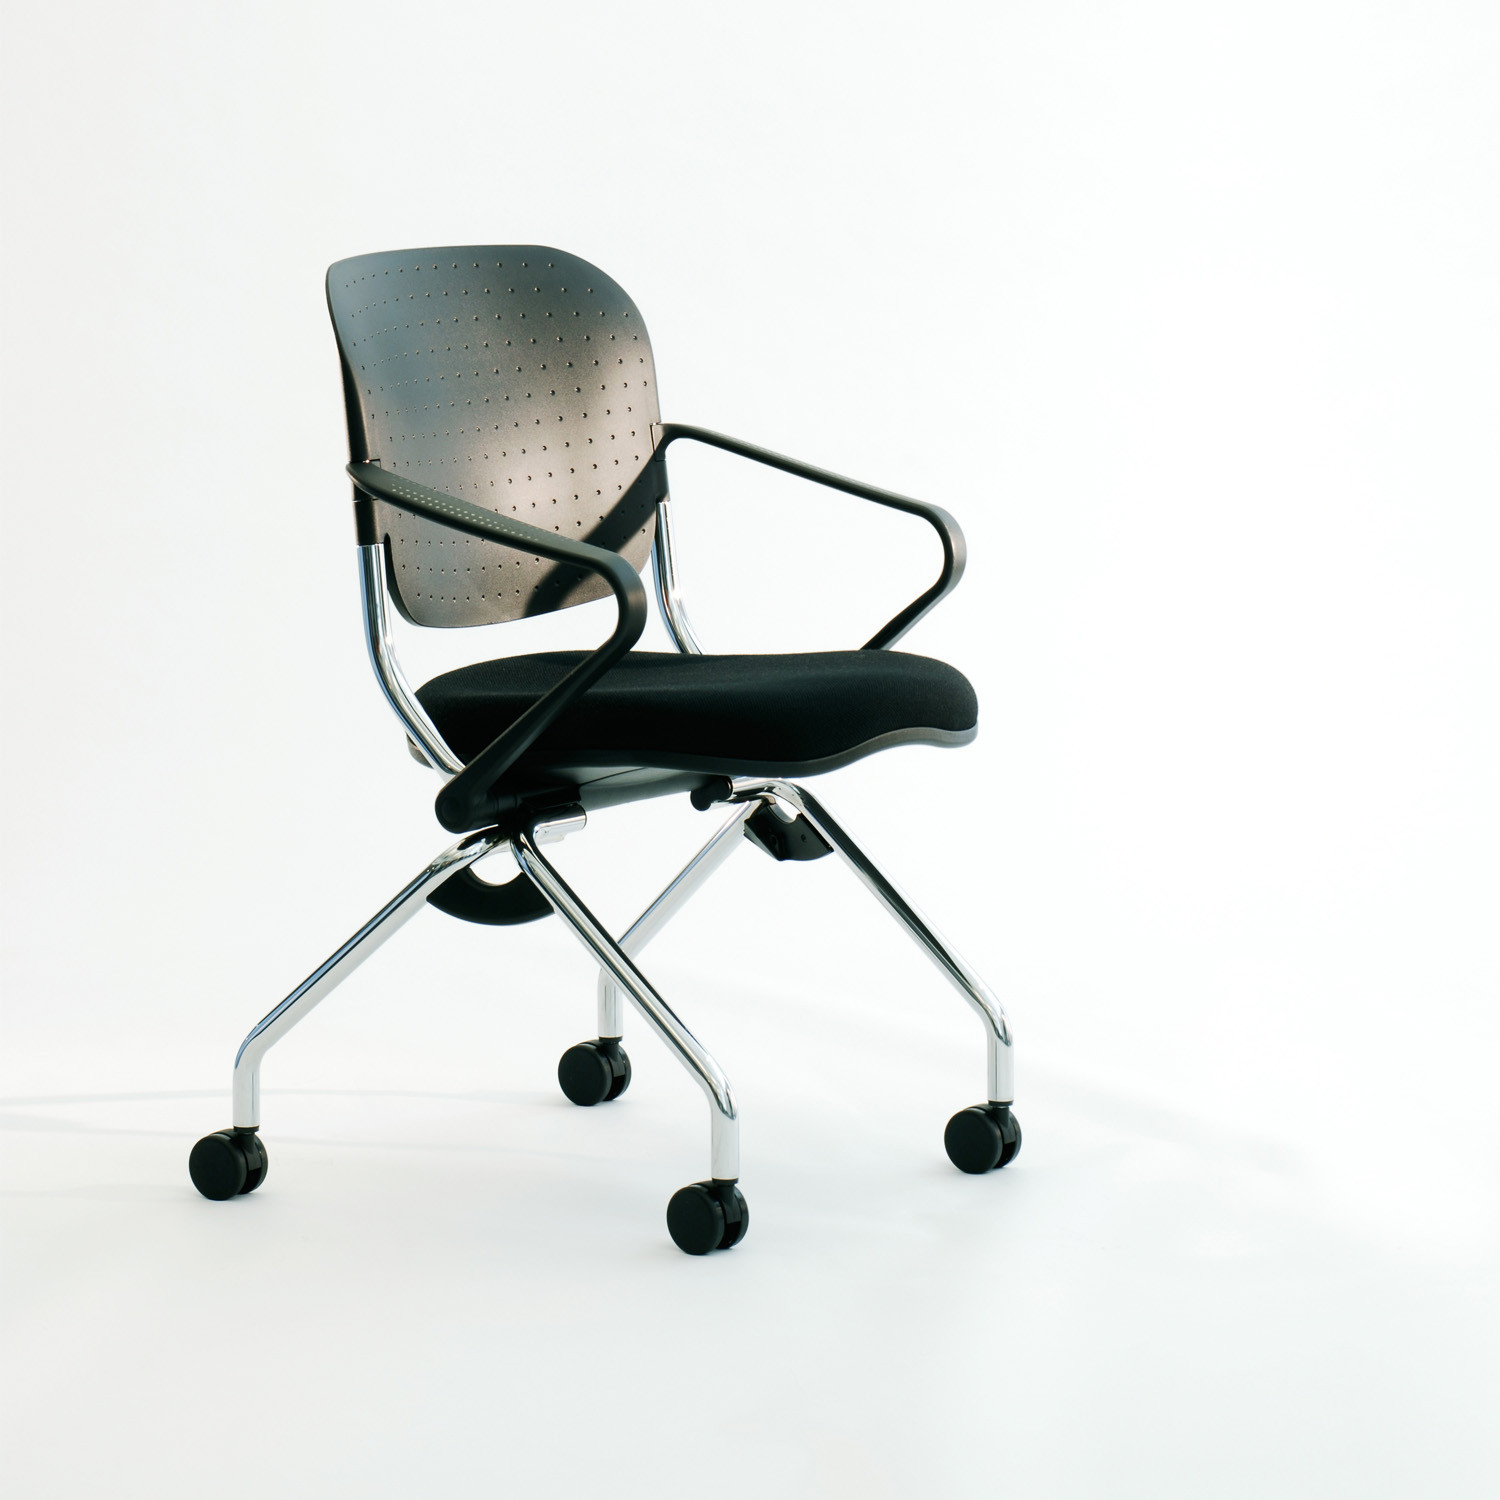 Torsion On the Go Chair with arms by KI